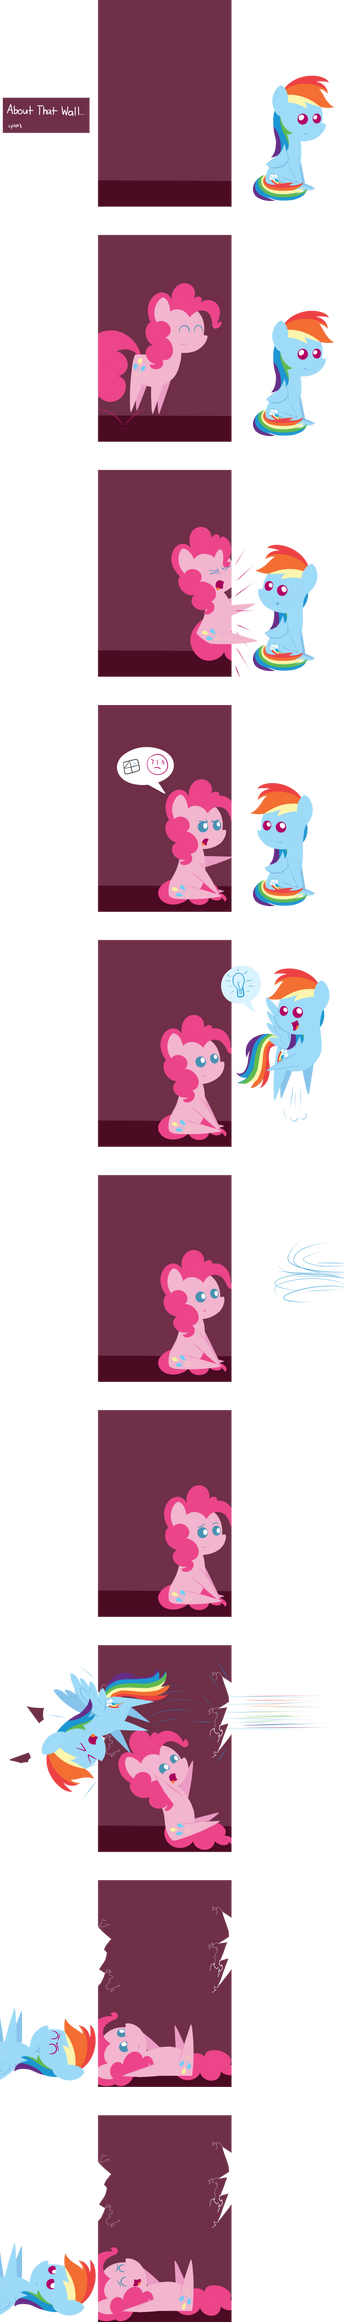 MLP: About That Wall... by postcrusade